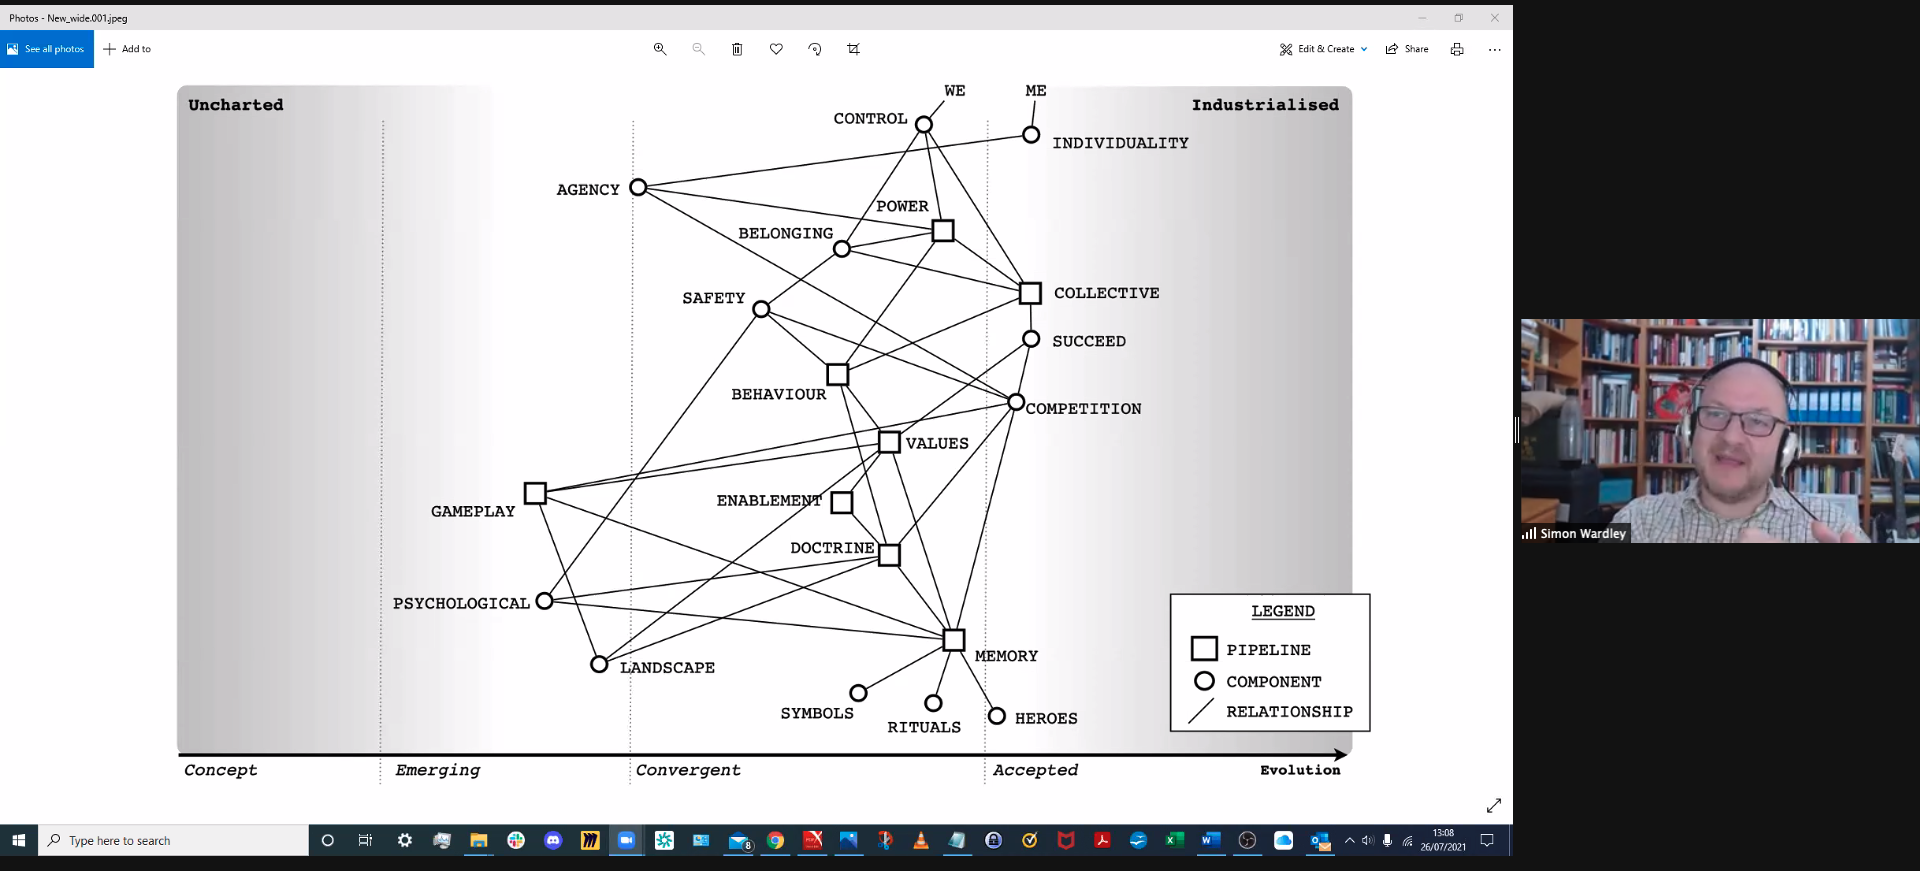 A map of the interconnectivity of the 40 Wardley principles when applied to the emerging, convergent and accepted principles of humanity: Phase I - Stop Self Harm 1.1 Know your users 1.2 Challenge assumptions 1.3 Use appropriate methods 1.4 Use a systematic mechanism of learning 1.5 Focus on user needs 1.6 Focus on high situational awareness 1.7 Remove bias and duplication 1.8 Use a common language 1.9 Think small 2 Phase II - Becoming More Context Aware 2.1 Be transparent 2.2 Focus on the outcome, not a contract 2.3 Think aptitude and attitude 2.4 Strategy is iterative, not linear 2.5 Move fast 2.6 Use appropriate tools 2.7 Think small 2.8 A bias towards action 2.9 Be pragmatic 2.10 Manage inertia 2.11 Use standards where appropriate 2.12 Distribute power and decision making 2.13 Think Fast, Inexpensive, Restrained, and Elegant (FIRE) 2.14 Effectiveness over efficiency 2.15 Manage failure 3 Phase III - Better for Less 3.1 Provide purpose, mastery & autonomy 3.2 Do better with less 3.3 Be the owner 3.4 Set exceptional standards 3.5 Optimise flow 3.6 Strategy is complex 3.7 Commit to the direction, be adaptive along the path 3.8 A bias towards the new 3.9 Be humble 3.10 Think big 3.11 Seek the best 4 Phase IV - Continuously Evolving 4.1 Exploit the landscape 4.2 Design for constant evolution 4.3 There is no core 4.4 Listen to your ecosystems